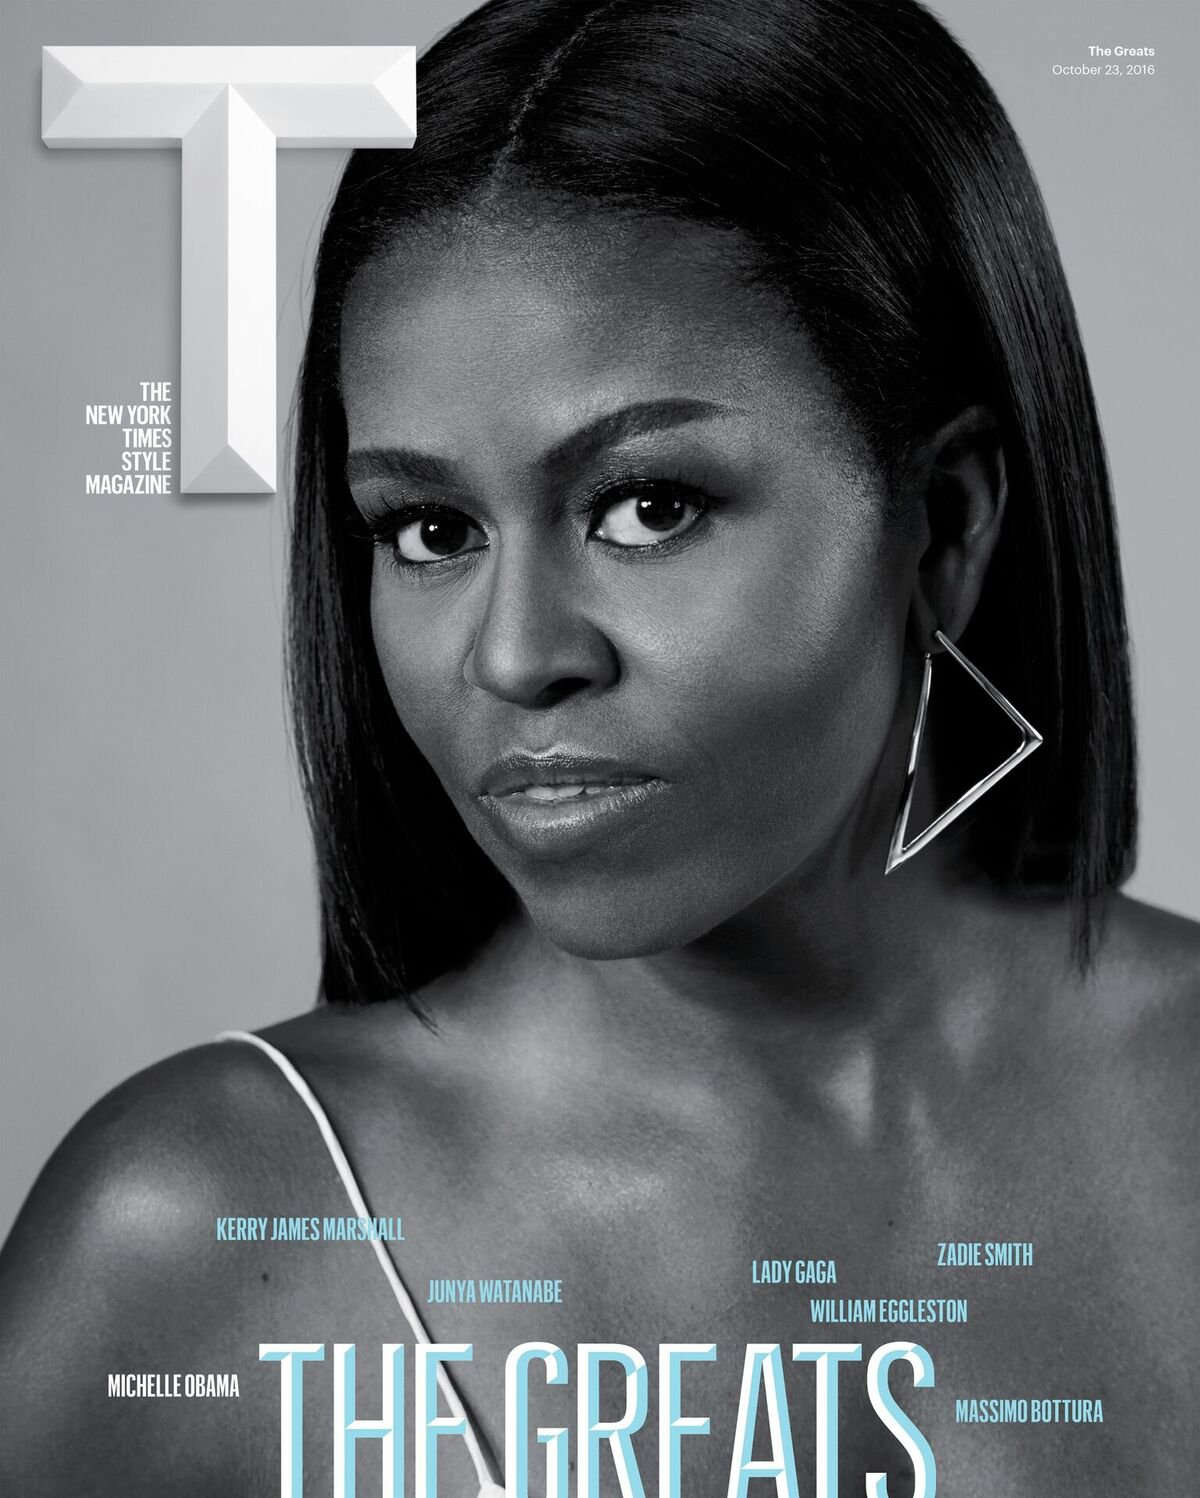 f53d0c9f4b0942bc_Michelle_Obama_-_Collier_Schorr_1_